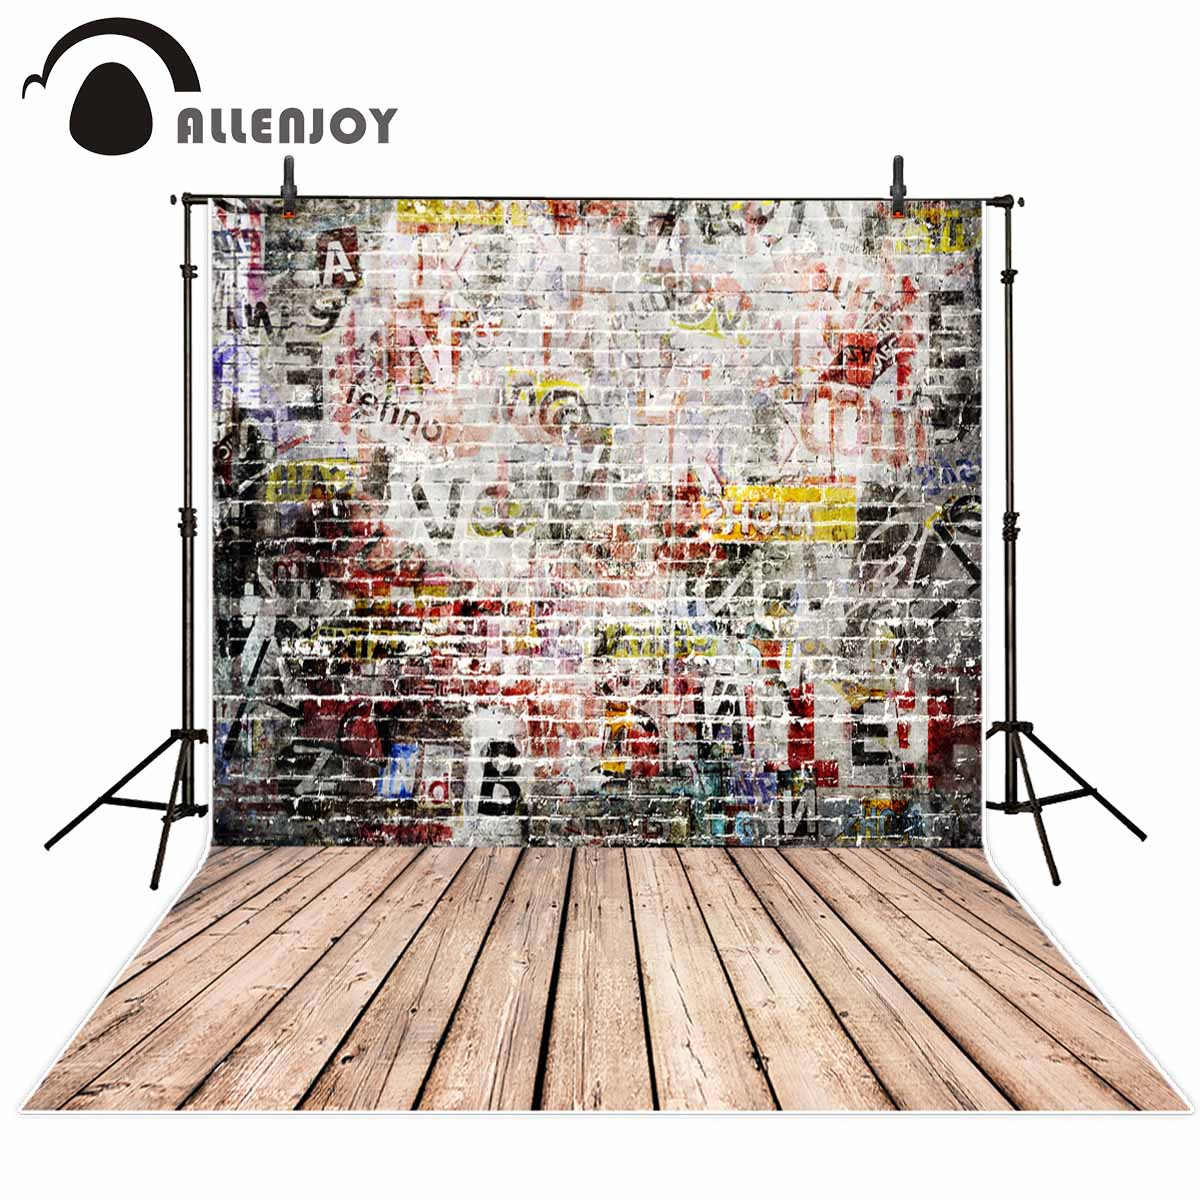 Allenjoy Graffiti background letters cool brick wall wood floor backdrop background for photography studio for photo studio foto 5x10ft 1 5x3m vivid brick wall and weathered wood floor printed studio photography backdrop background for photo studio n 014